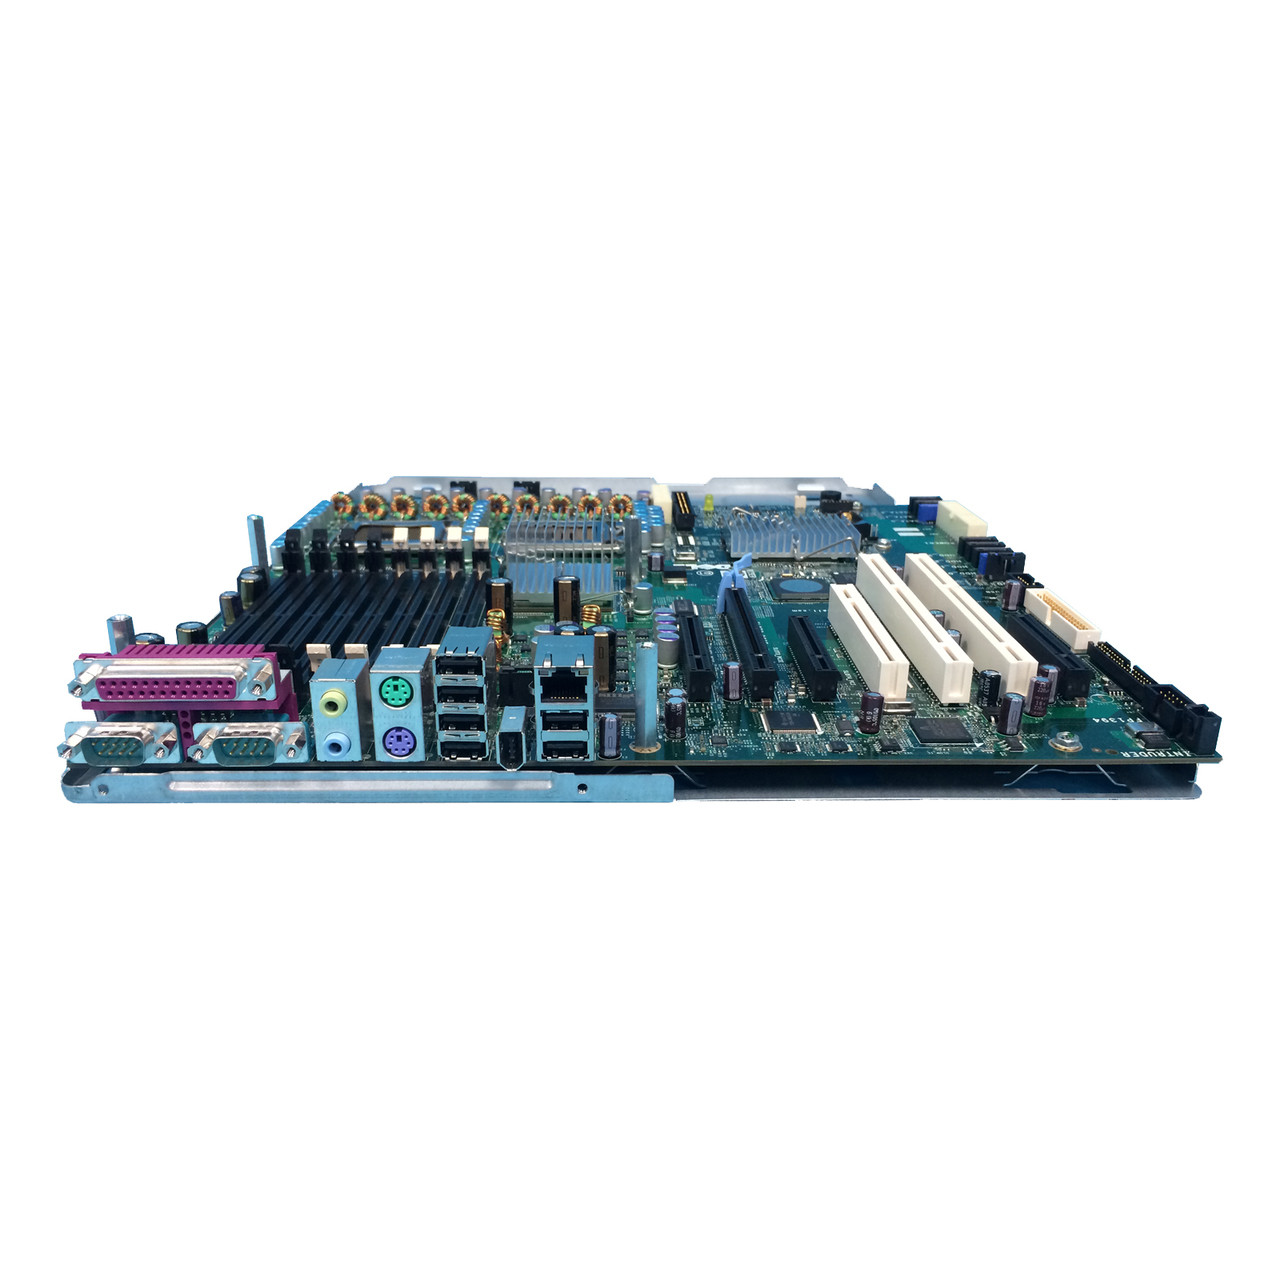 small resolution of dell my171 precision 690 system board precision 690 motherboard dell laptop power supply pinout wiring diagram for dell 690 power supply